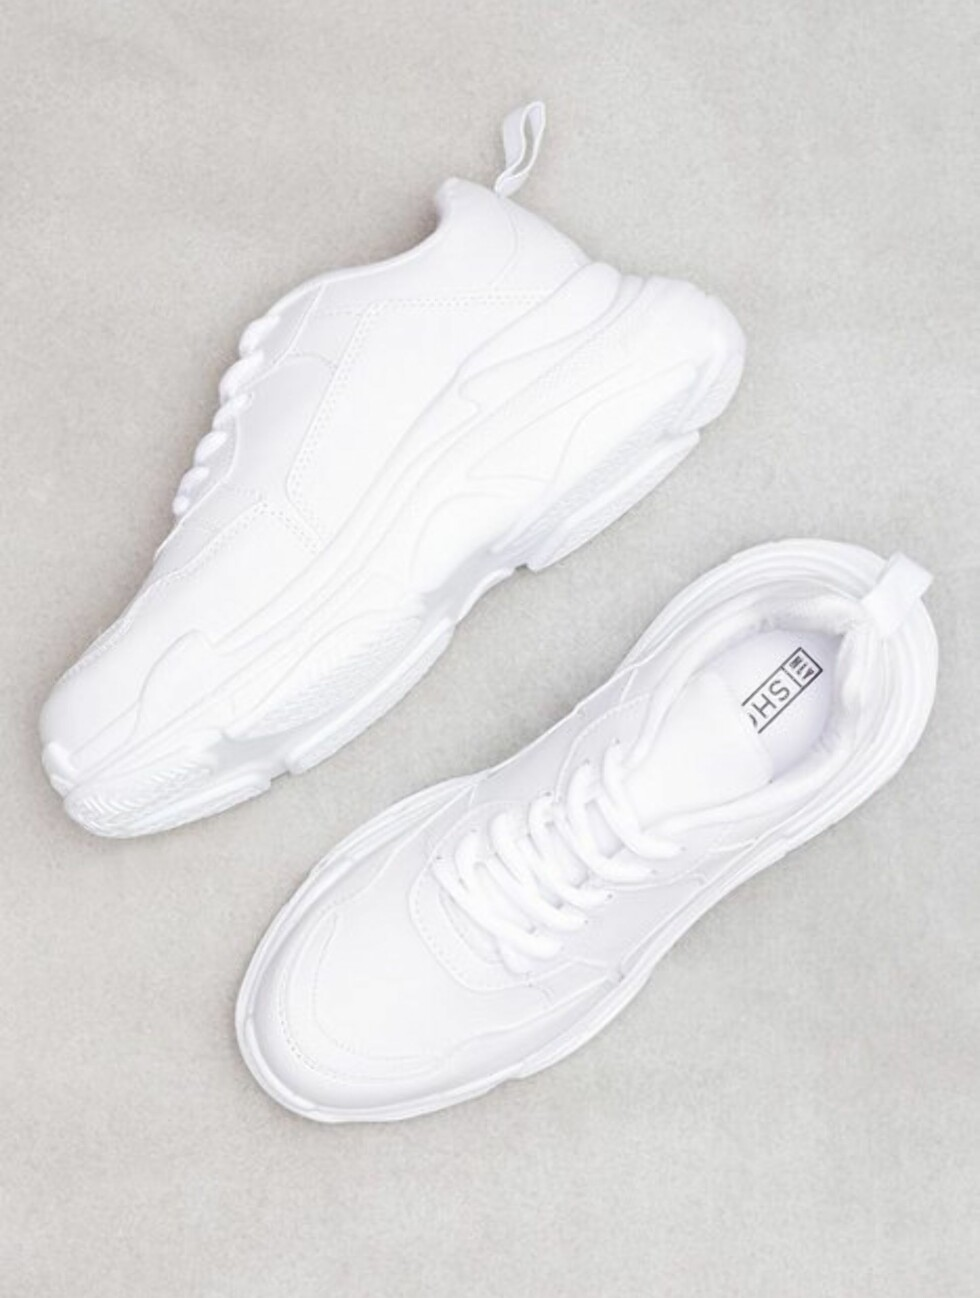 Sneakers fra Nelly |399,-| https://nelly.com/no/kl%C3%A6r-til-kvinner/sko/sneakers/nly-shoes-427/perfect-chunky-sneaker-429459-0001/